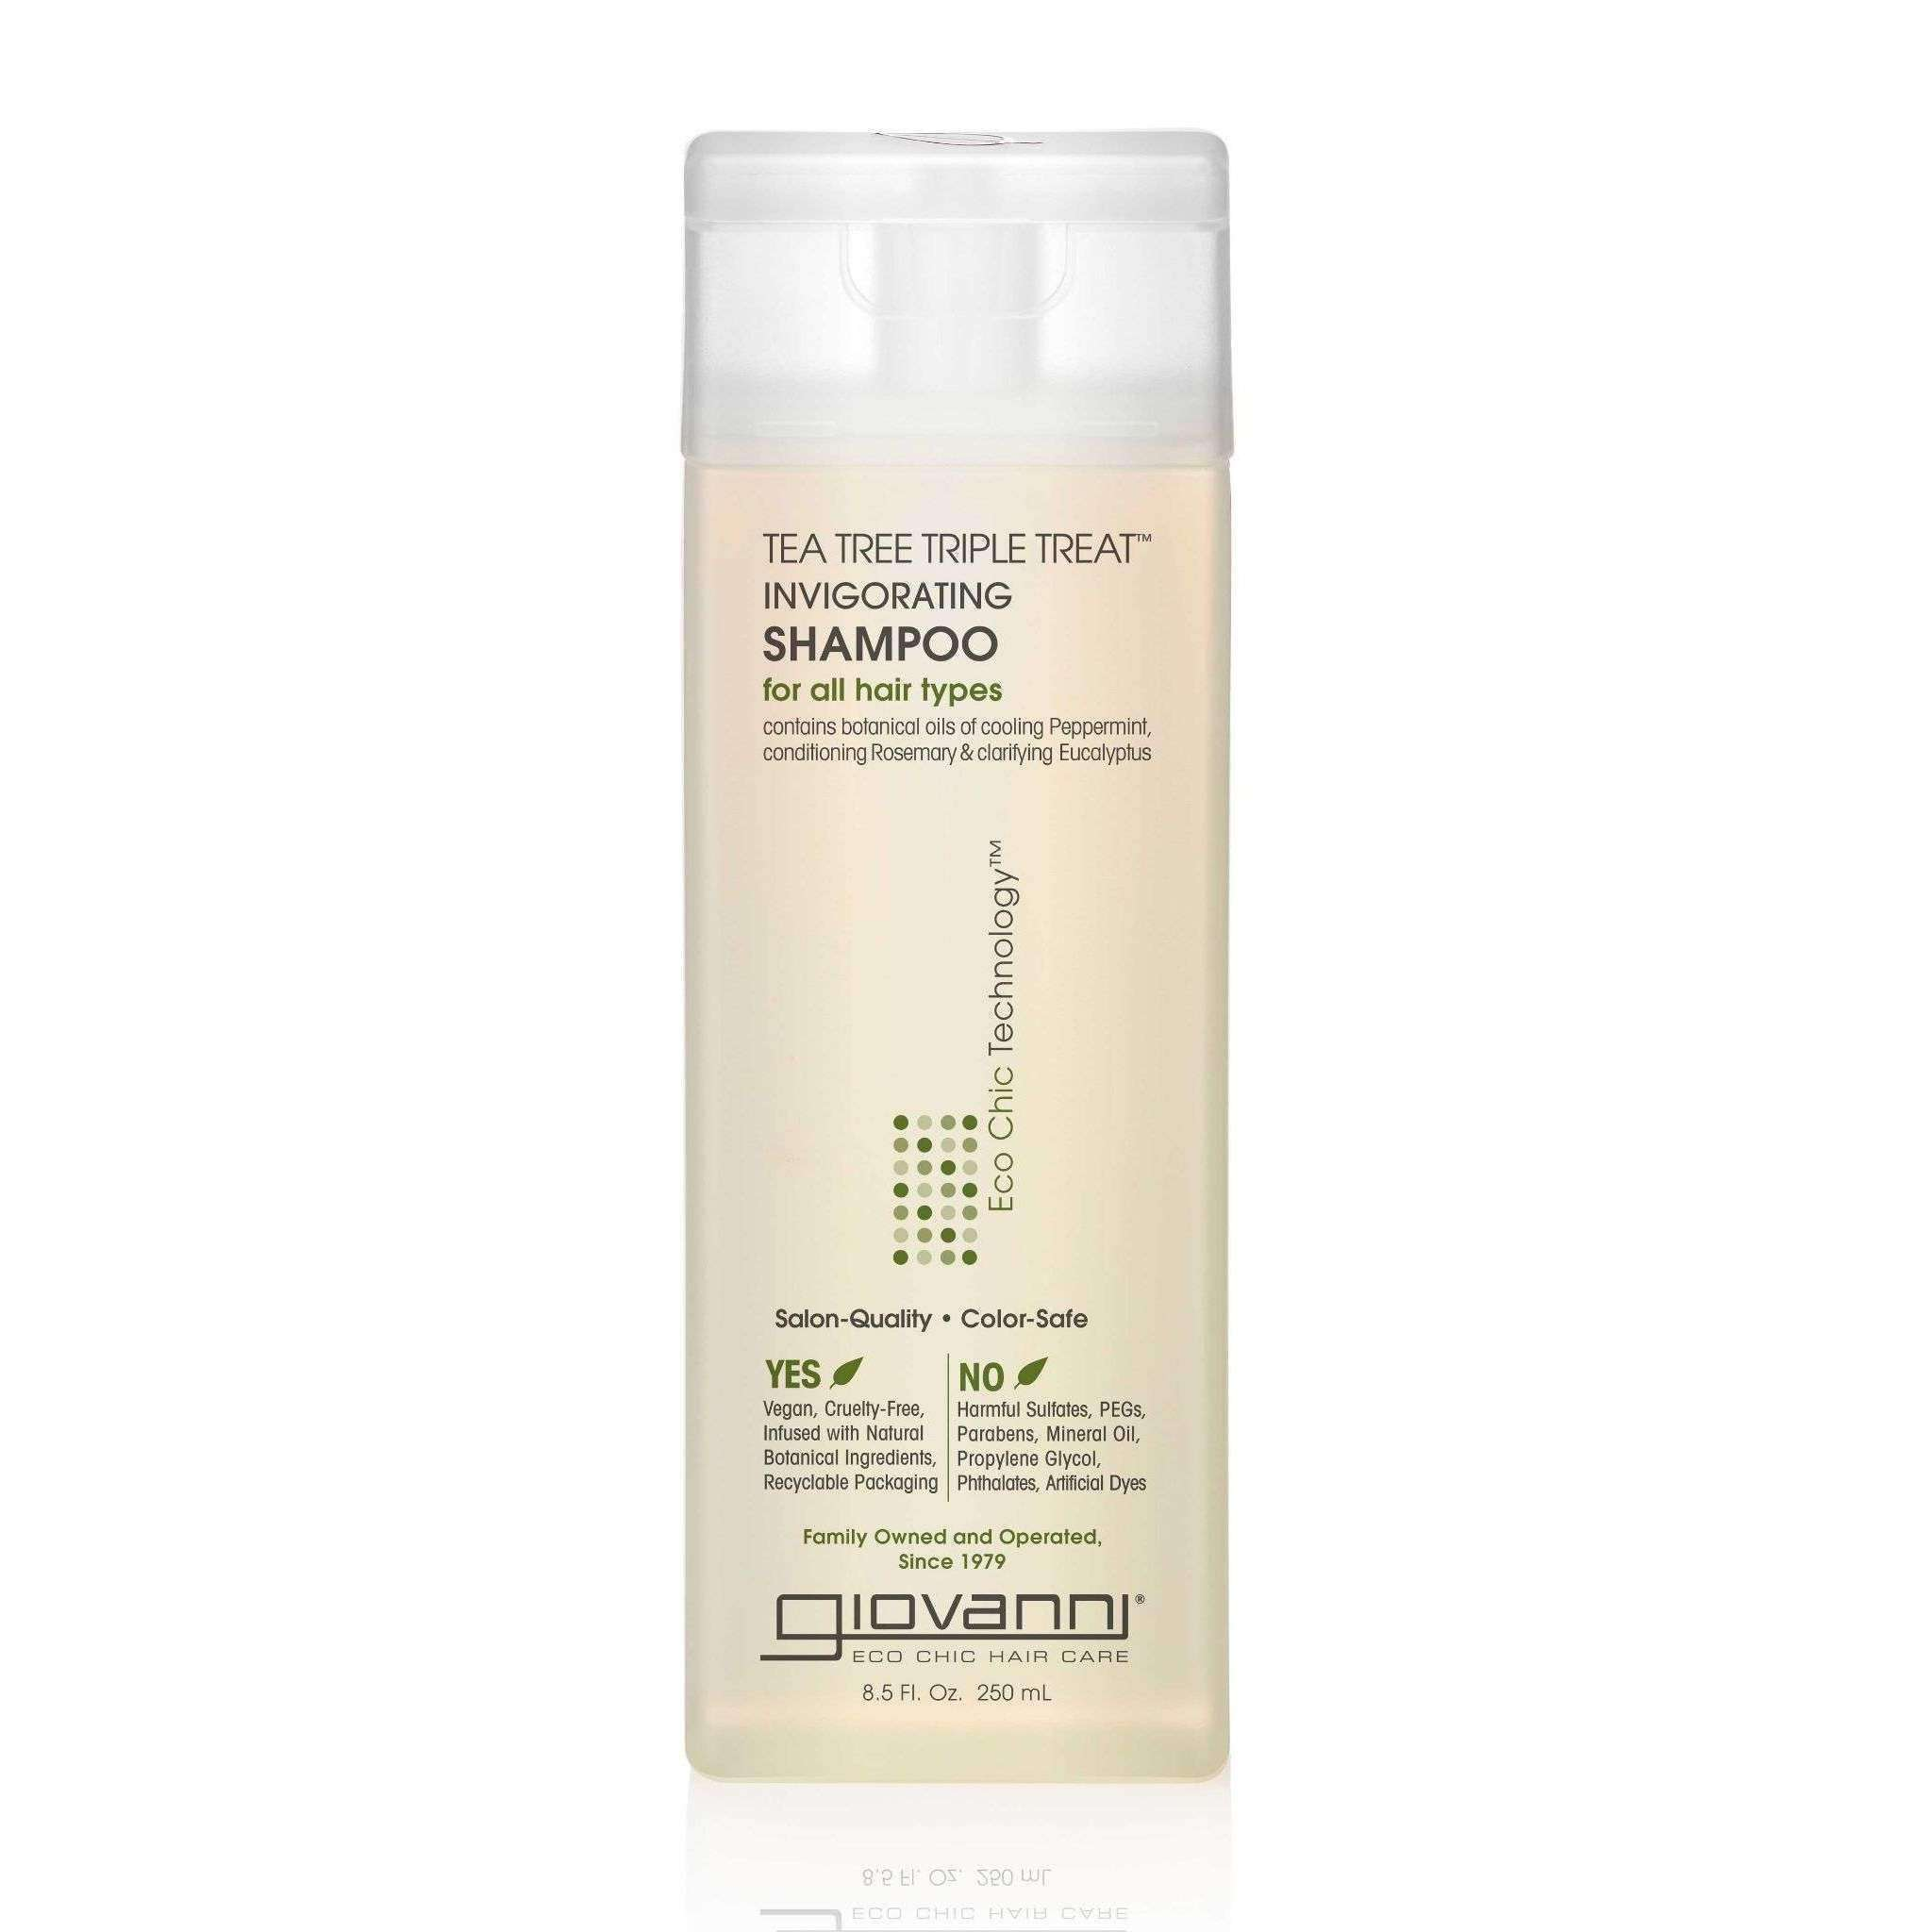 Giovanni Tea Tree Triple Treat Shampoo